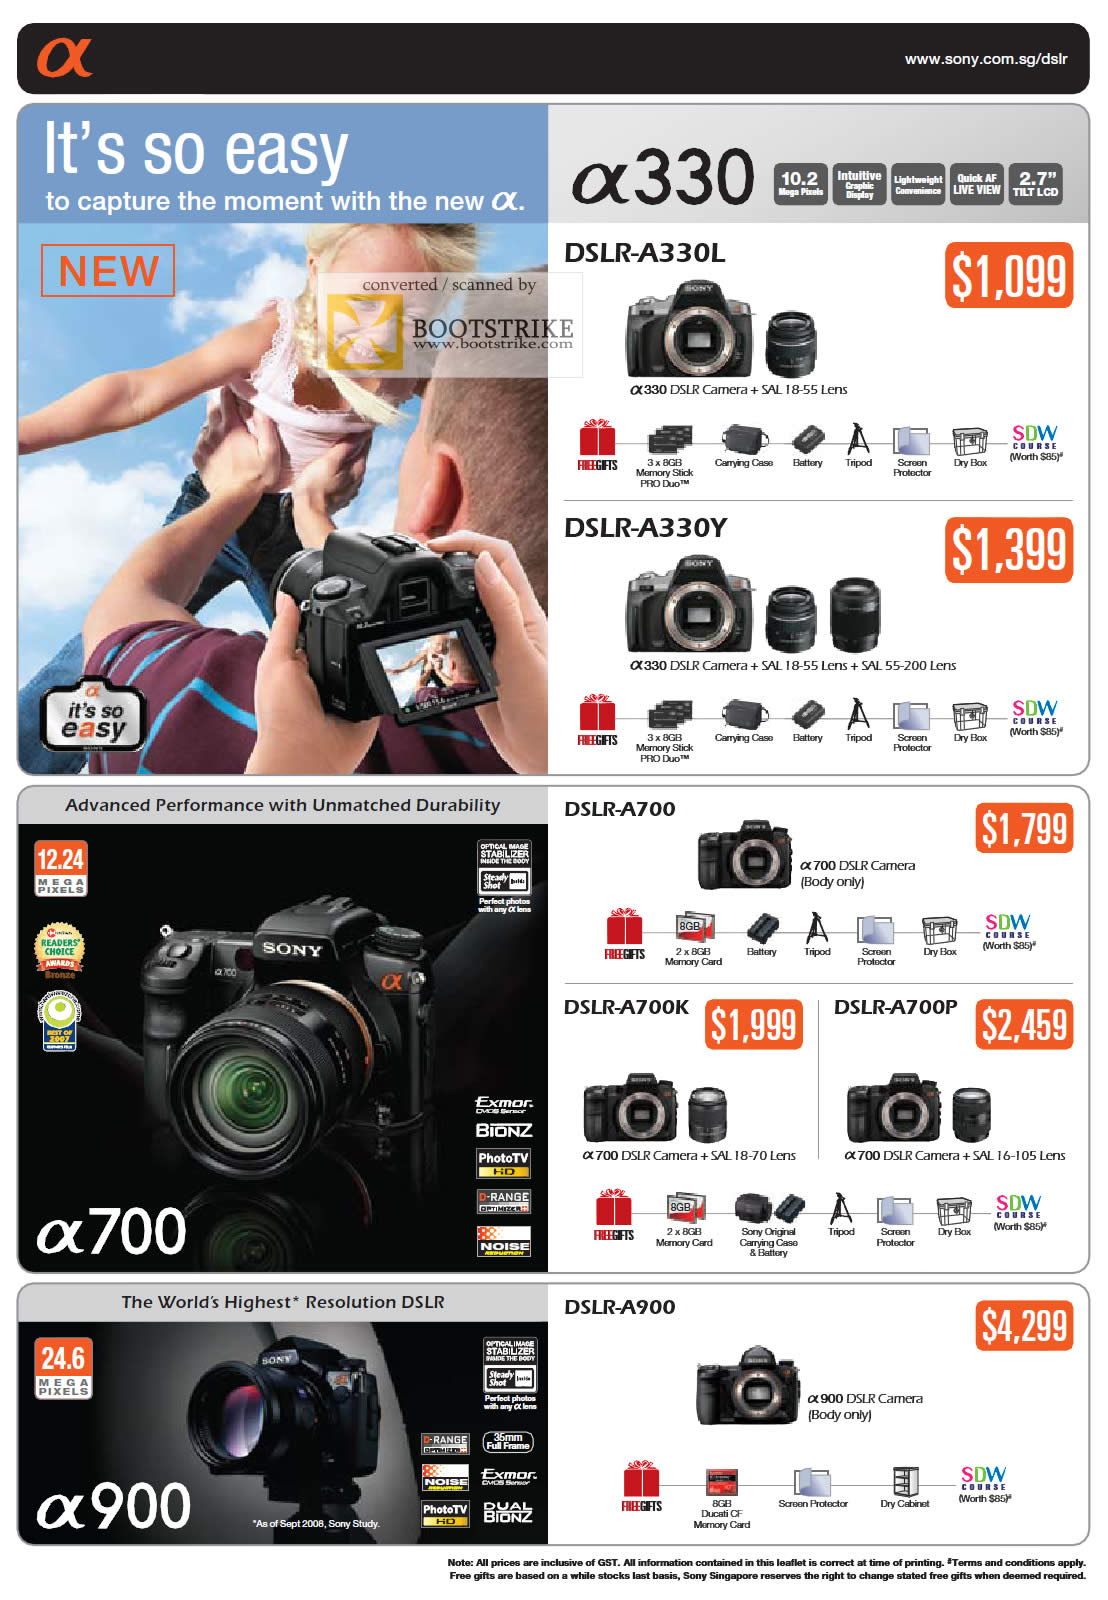 Camera List Of Sony Dslr Camera With Price sony alpha dslr a330 a700 a900 digital camera pc show 2009 price list image brochure of camera